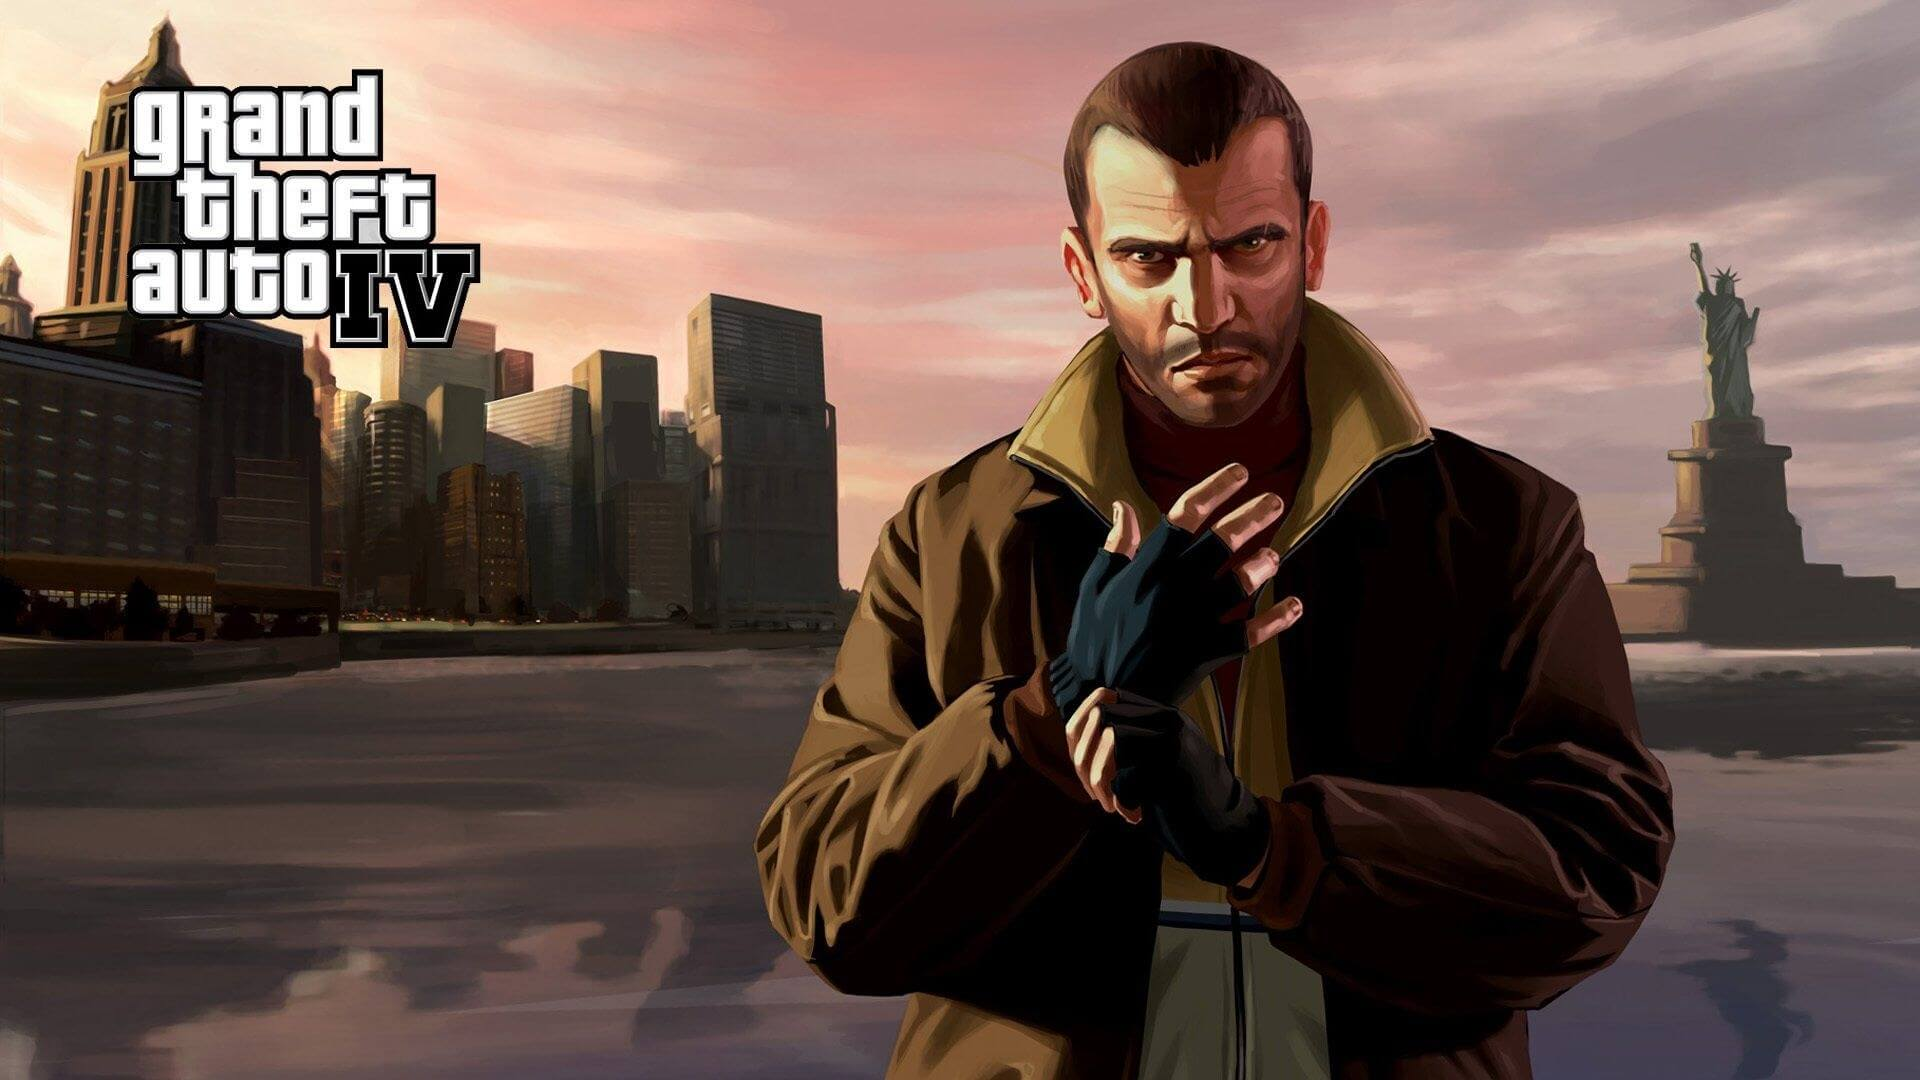 Rockstar will return GTA IV to Steam in March after removing Games for Windows Live code